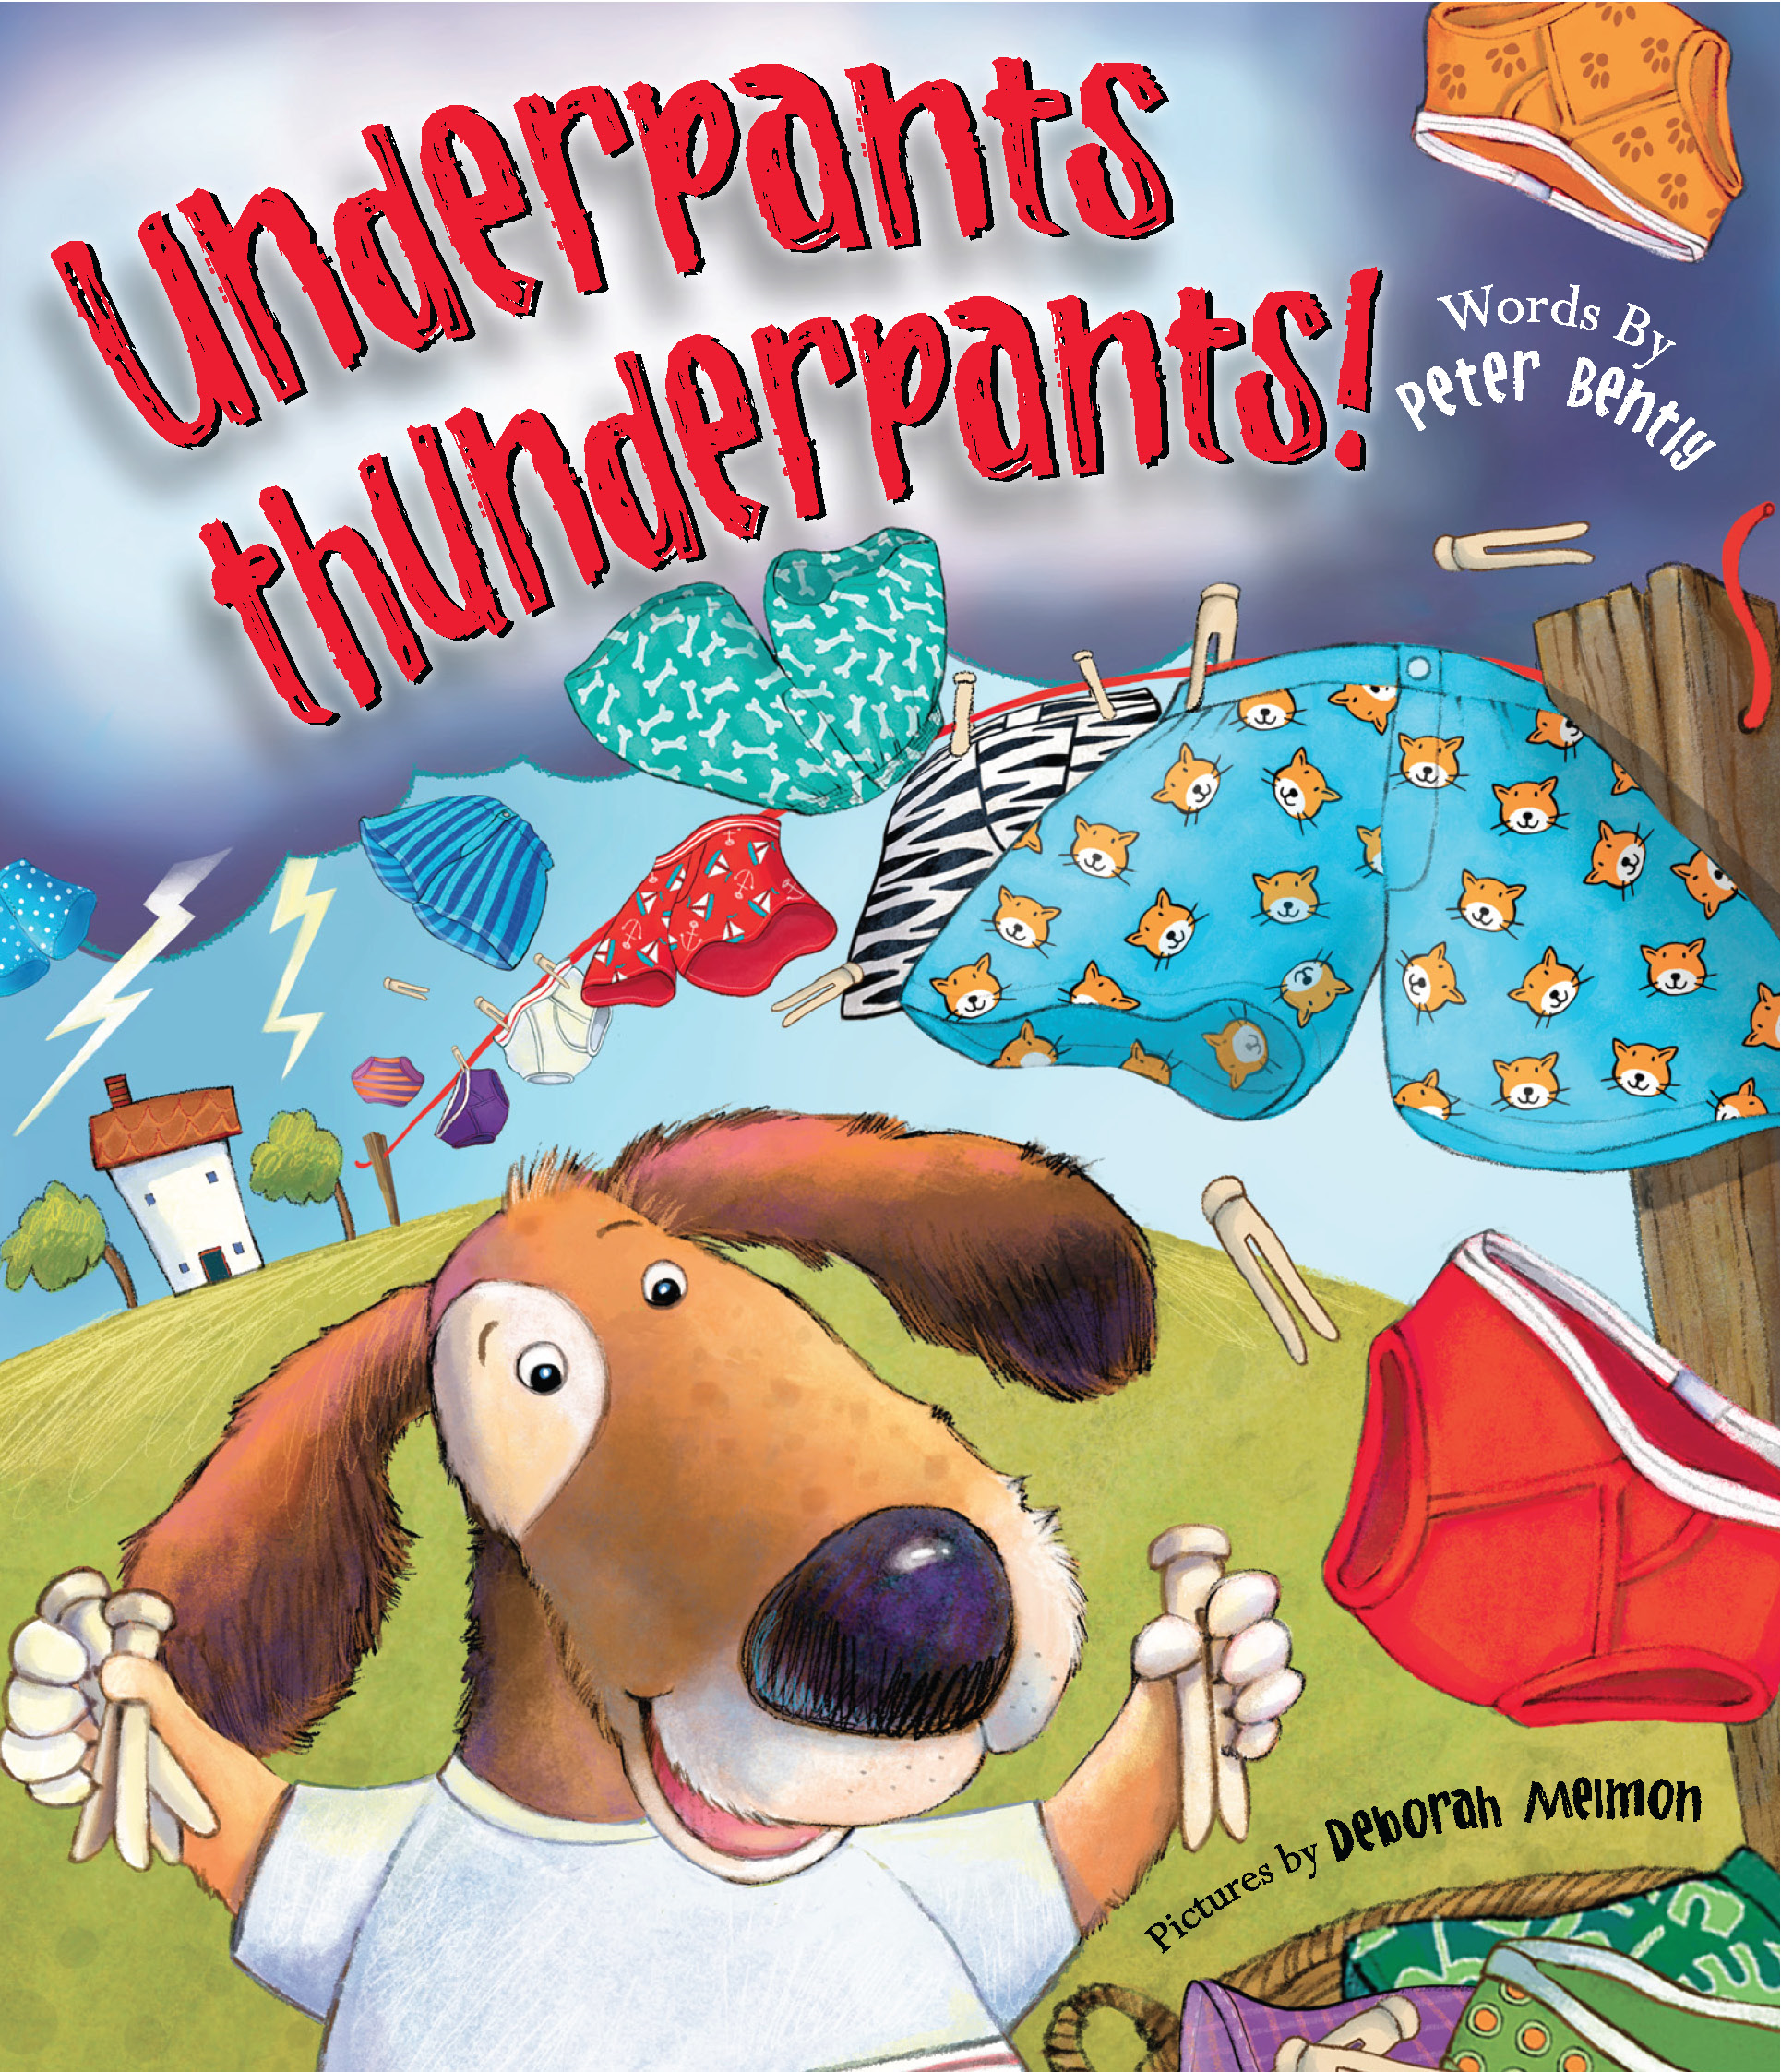 Underpants Thunderpants (Parragon Read-Along) By: Peter Bently,Deborah Melmon